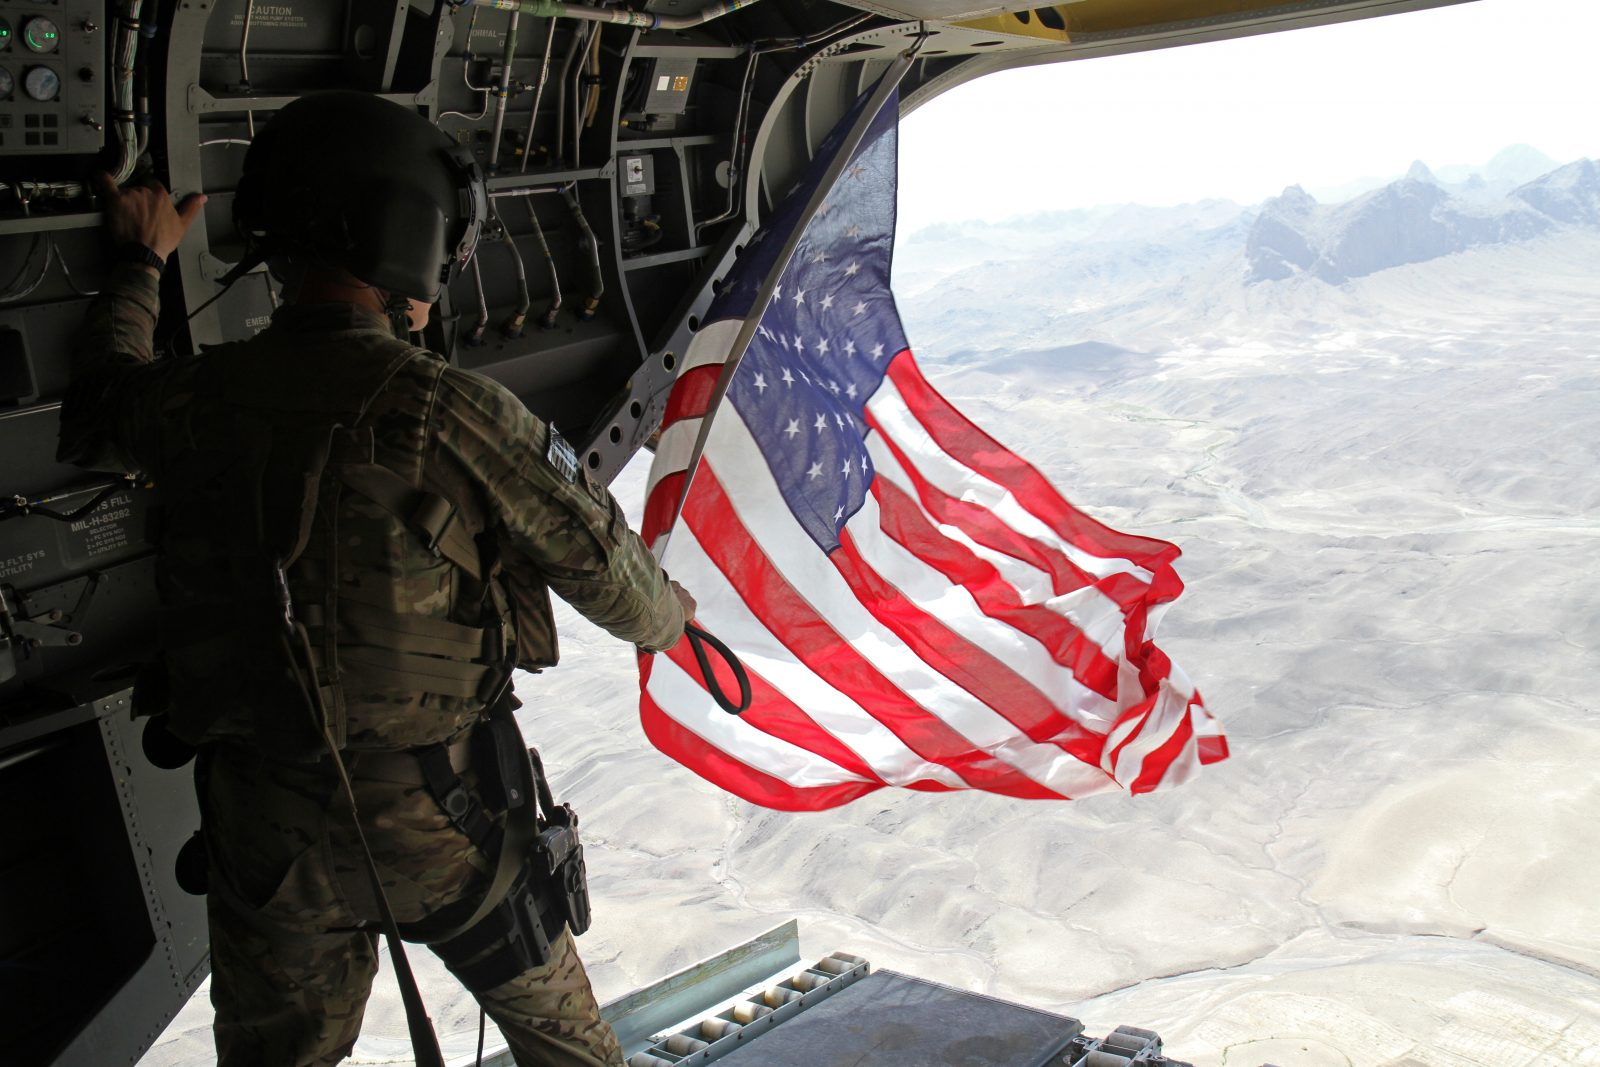 soldier flying U.S. flag from helicopter